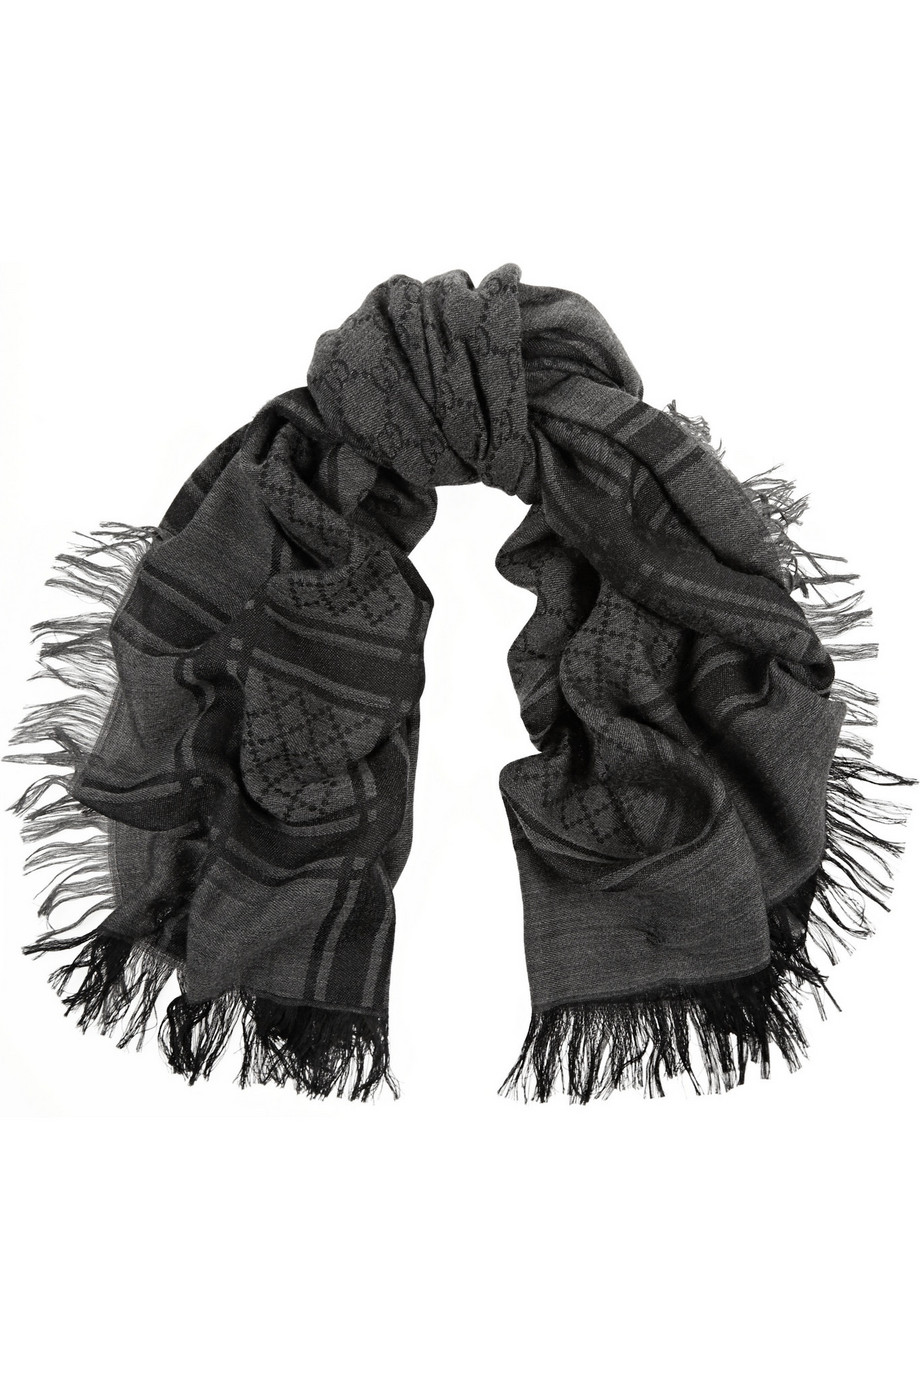 Gucci Survie Wool and Silk-Blend Scarf, Charcoal, Women's